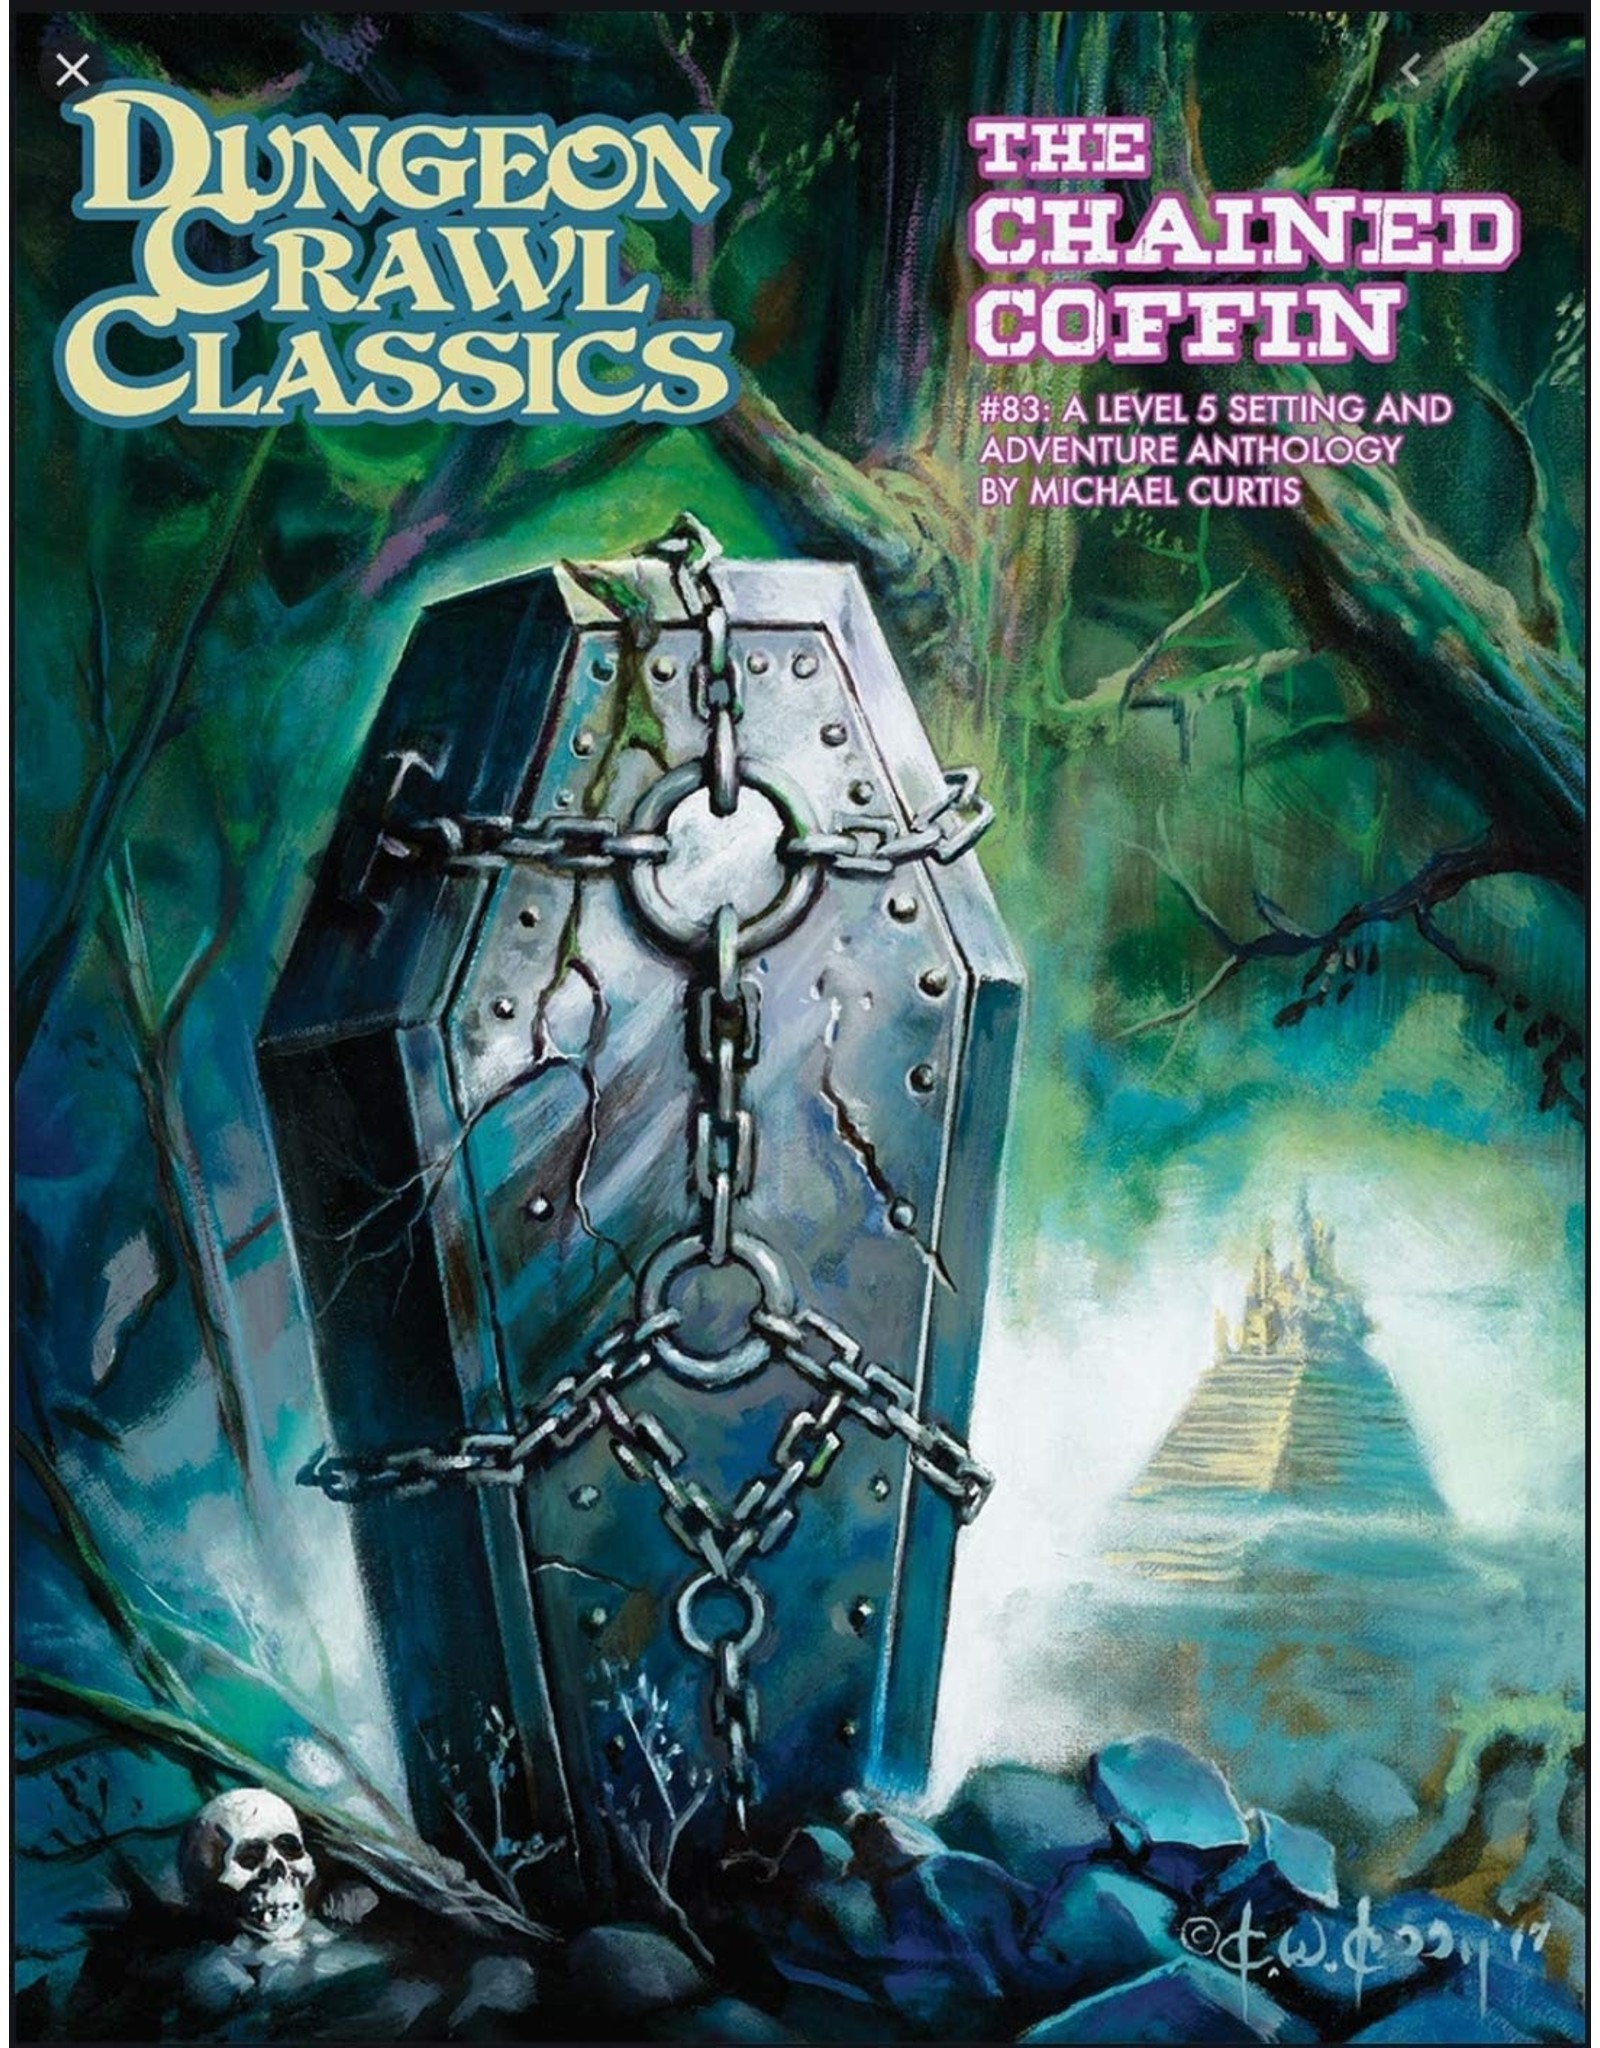 Dungeon Crawl Classics #83 The Chained Coffin